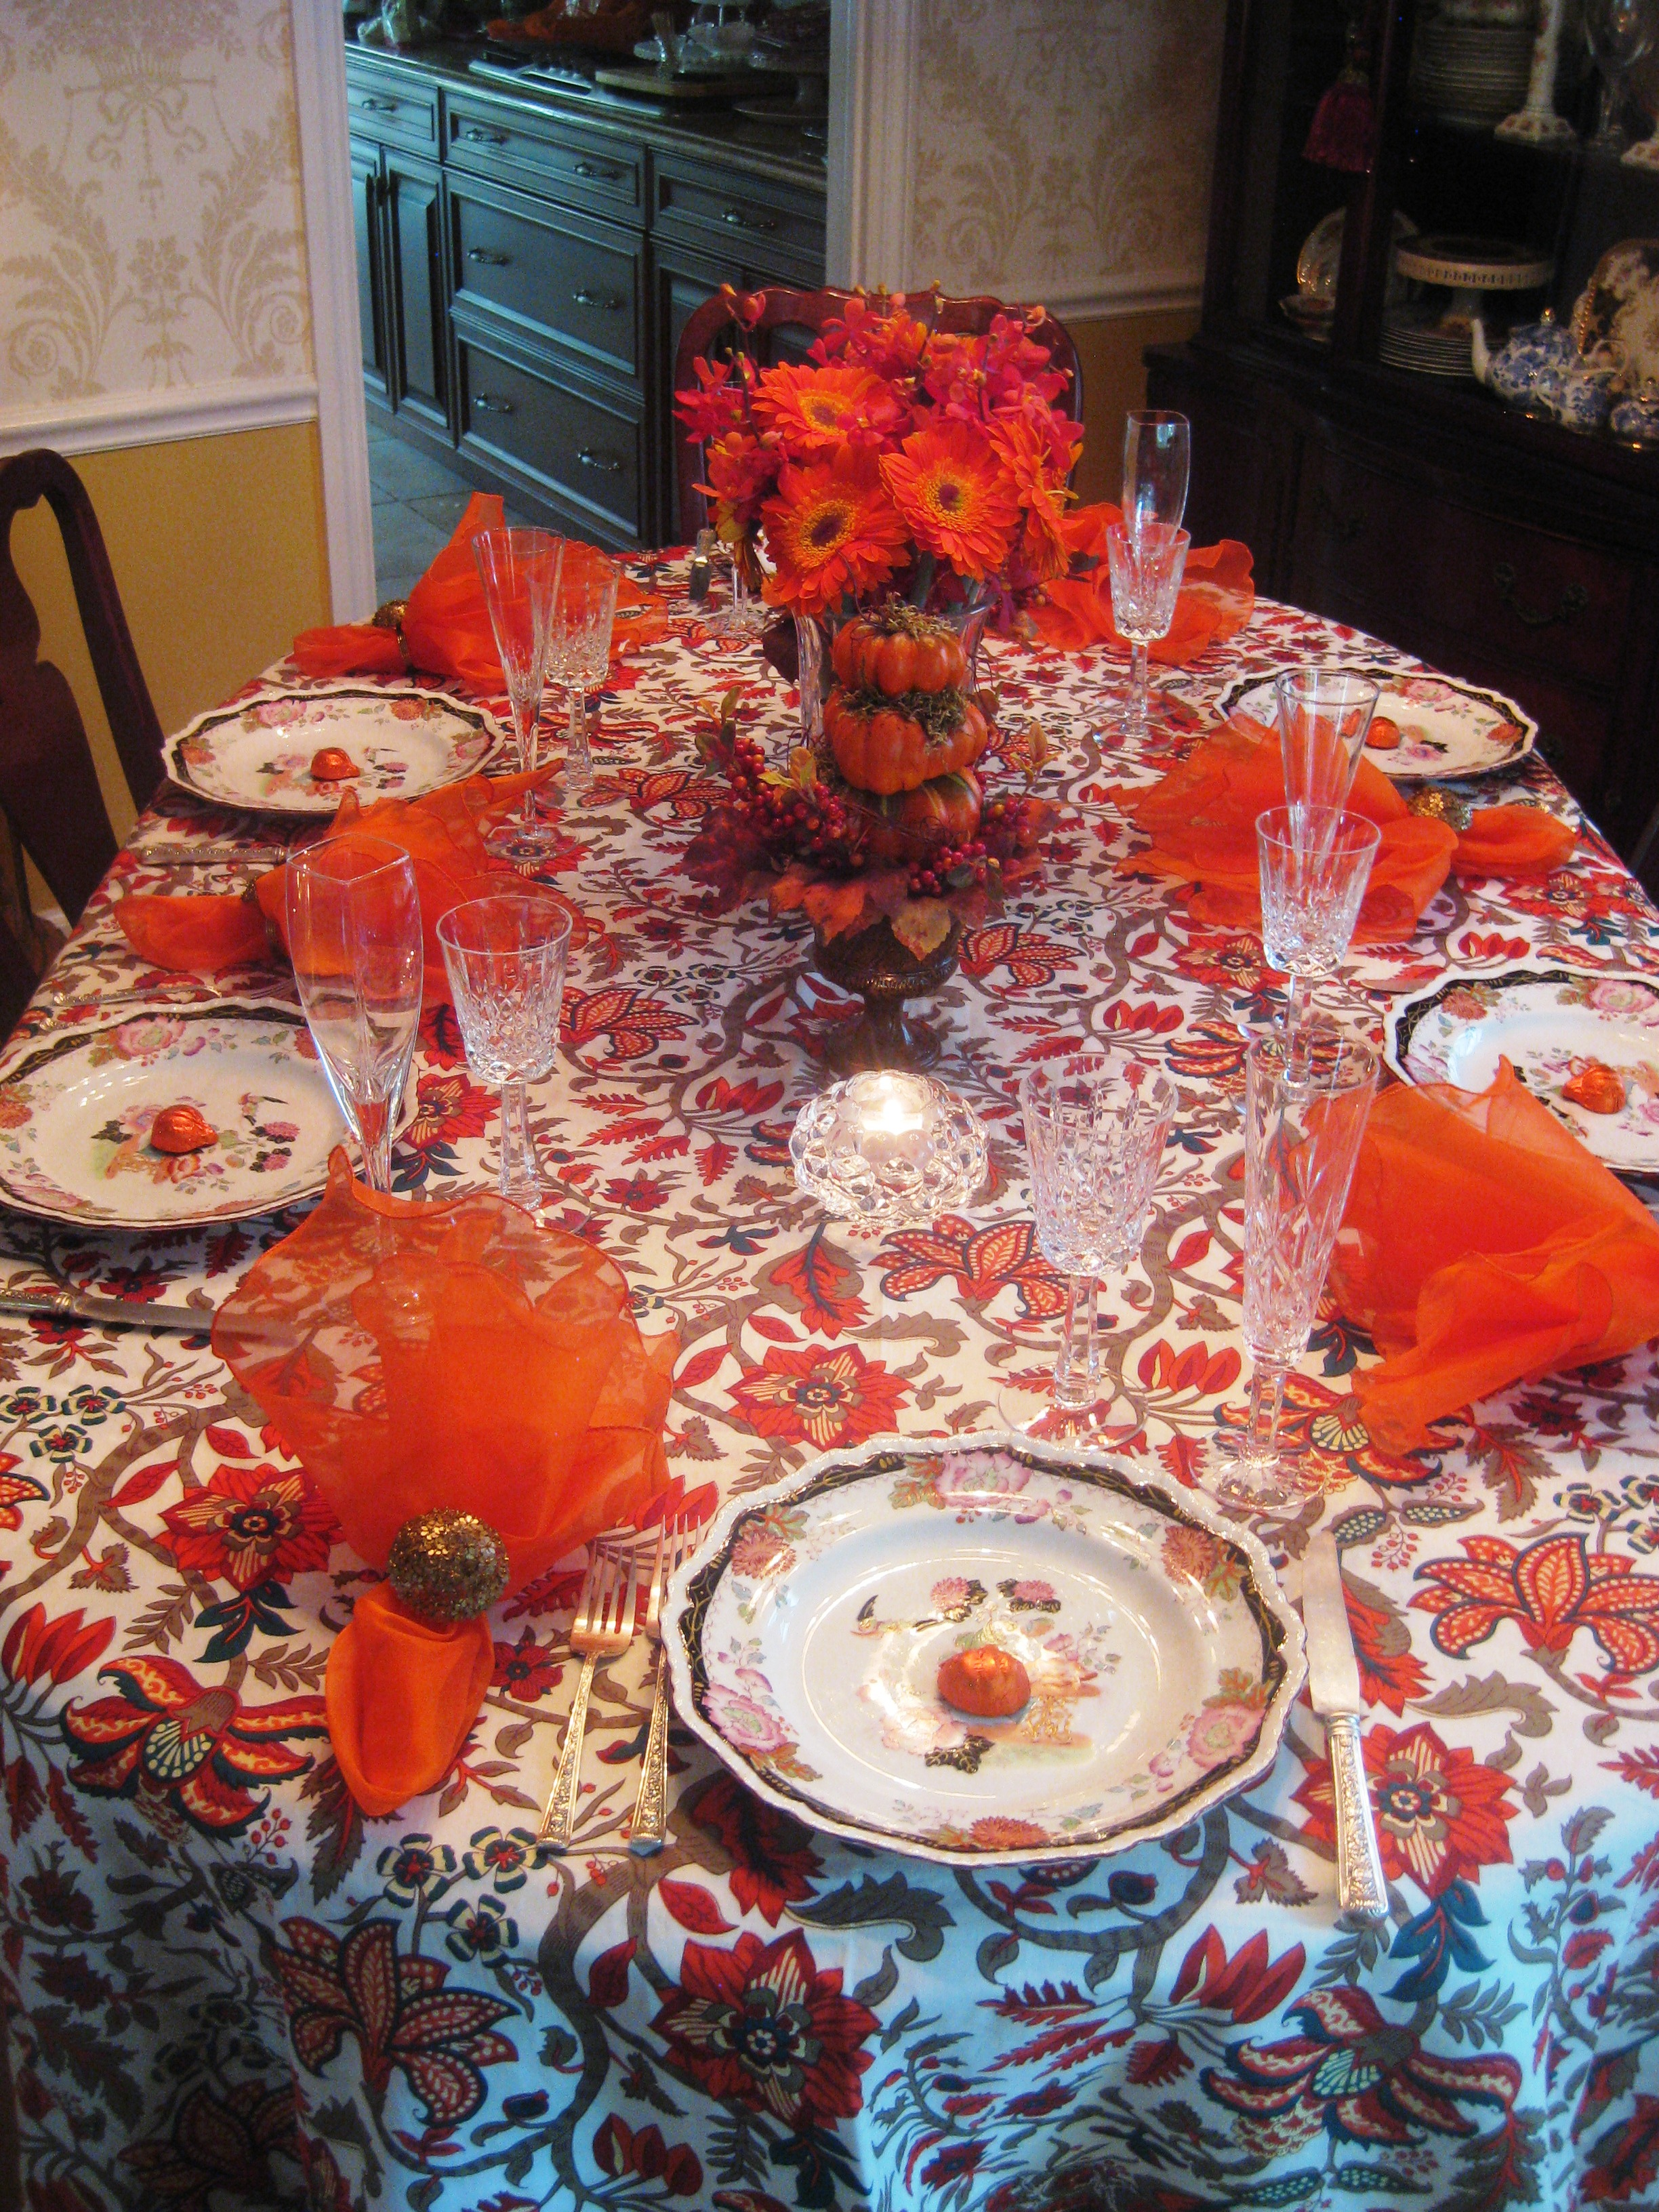 #AD2E1E » Orange Crush Tablescape Red Door Table Decor 5283 decoration table noel orange 2448x3264 px @ aertt.com